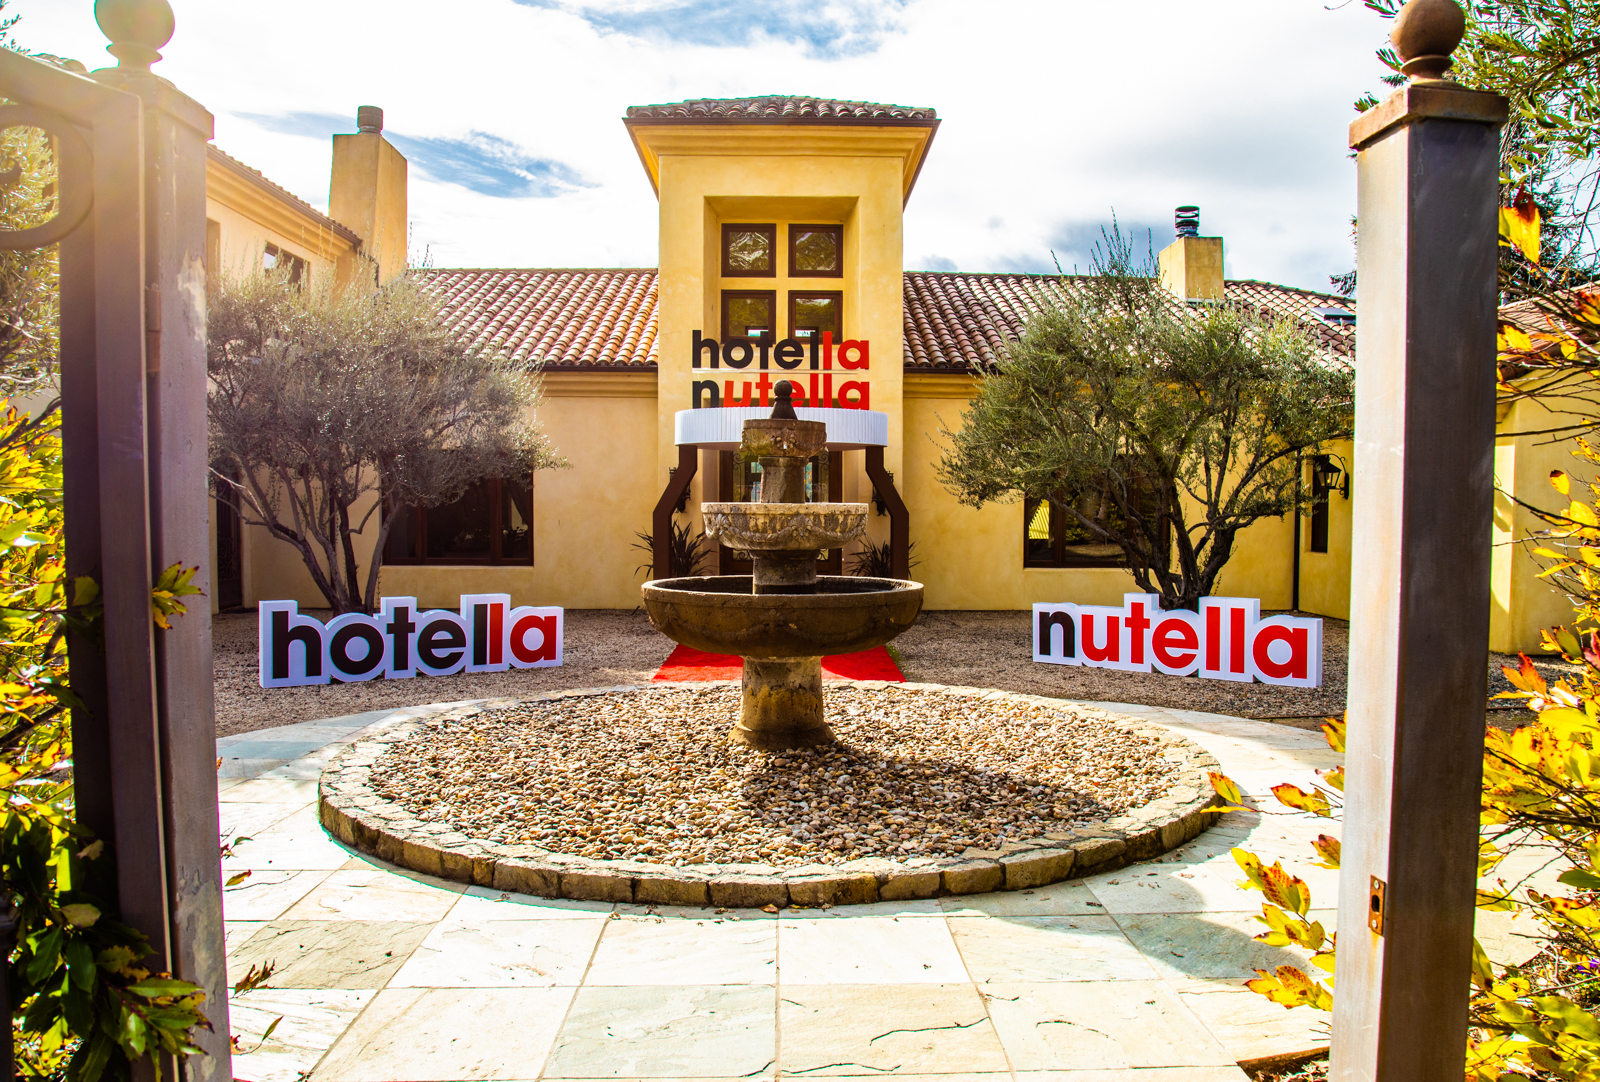 Inside the Nutella Hotel in Napa Valley